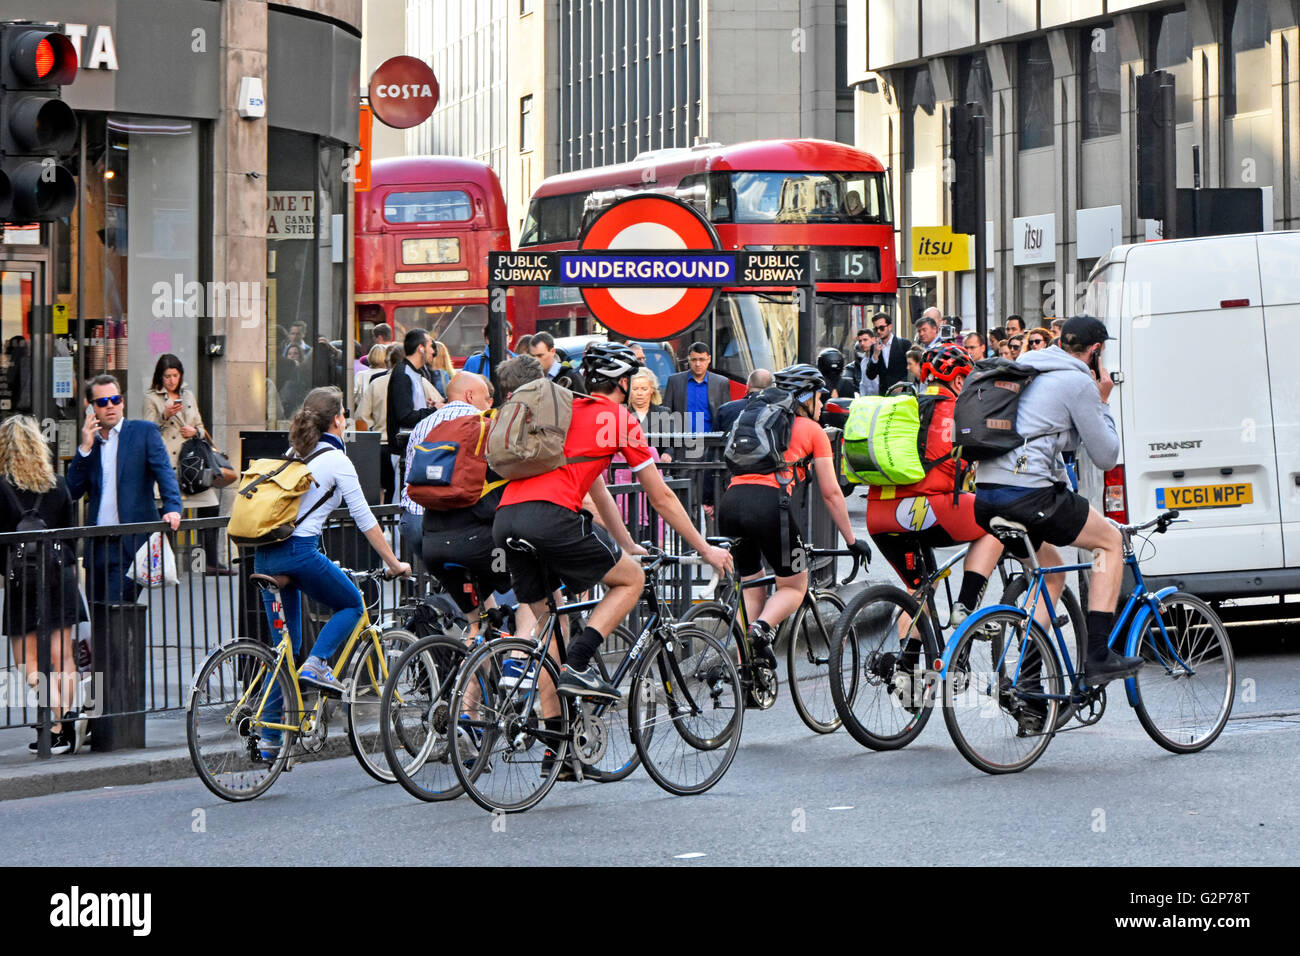 evening-rush-hour-in-city-of-london-engl